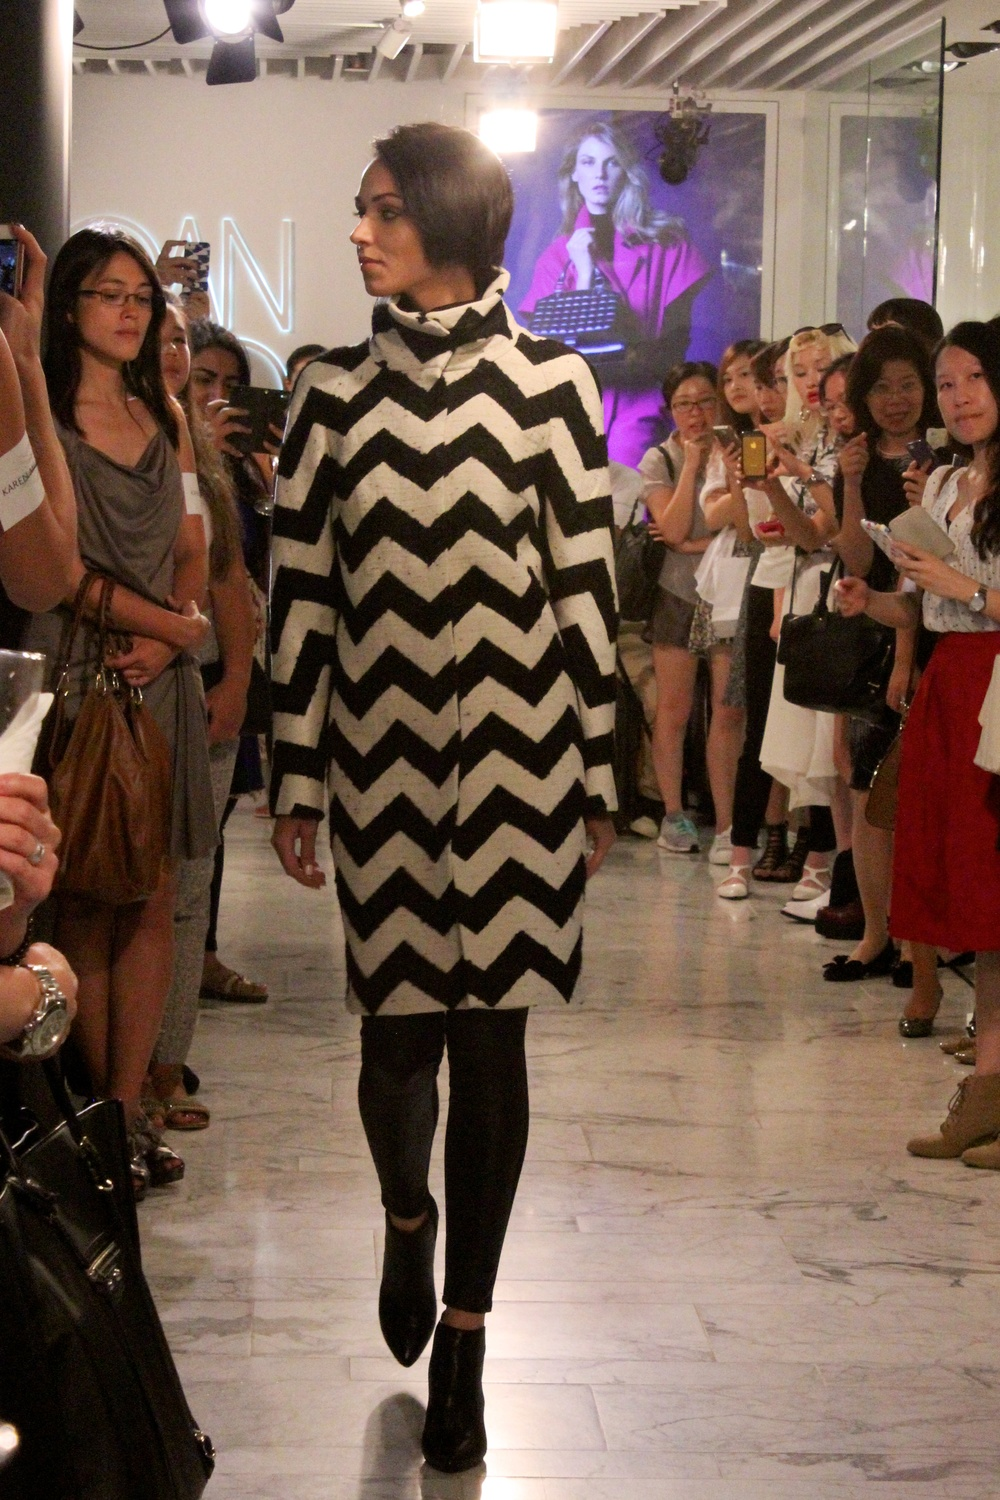 Coat: Oversized zig zag coat